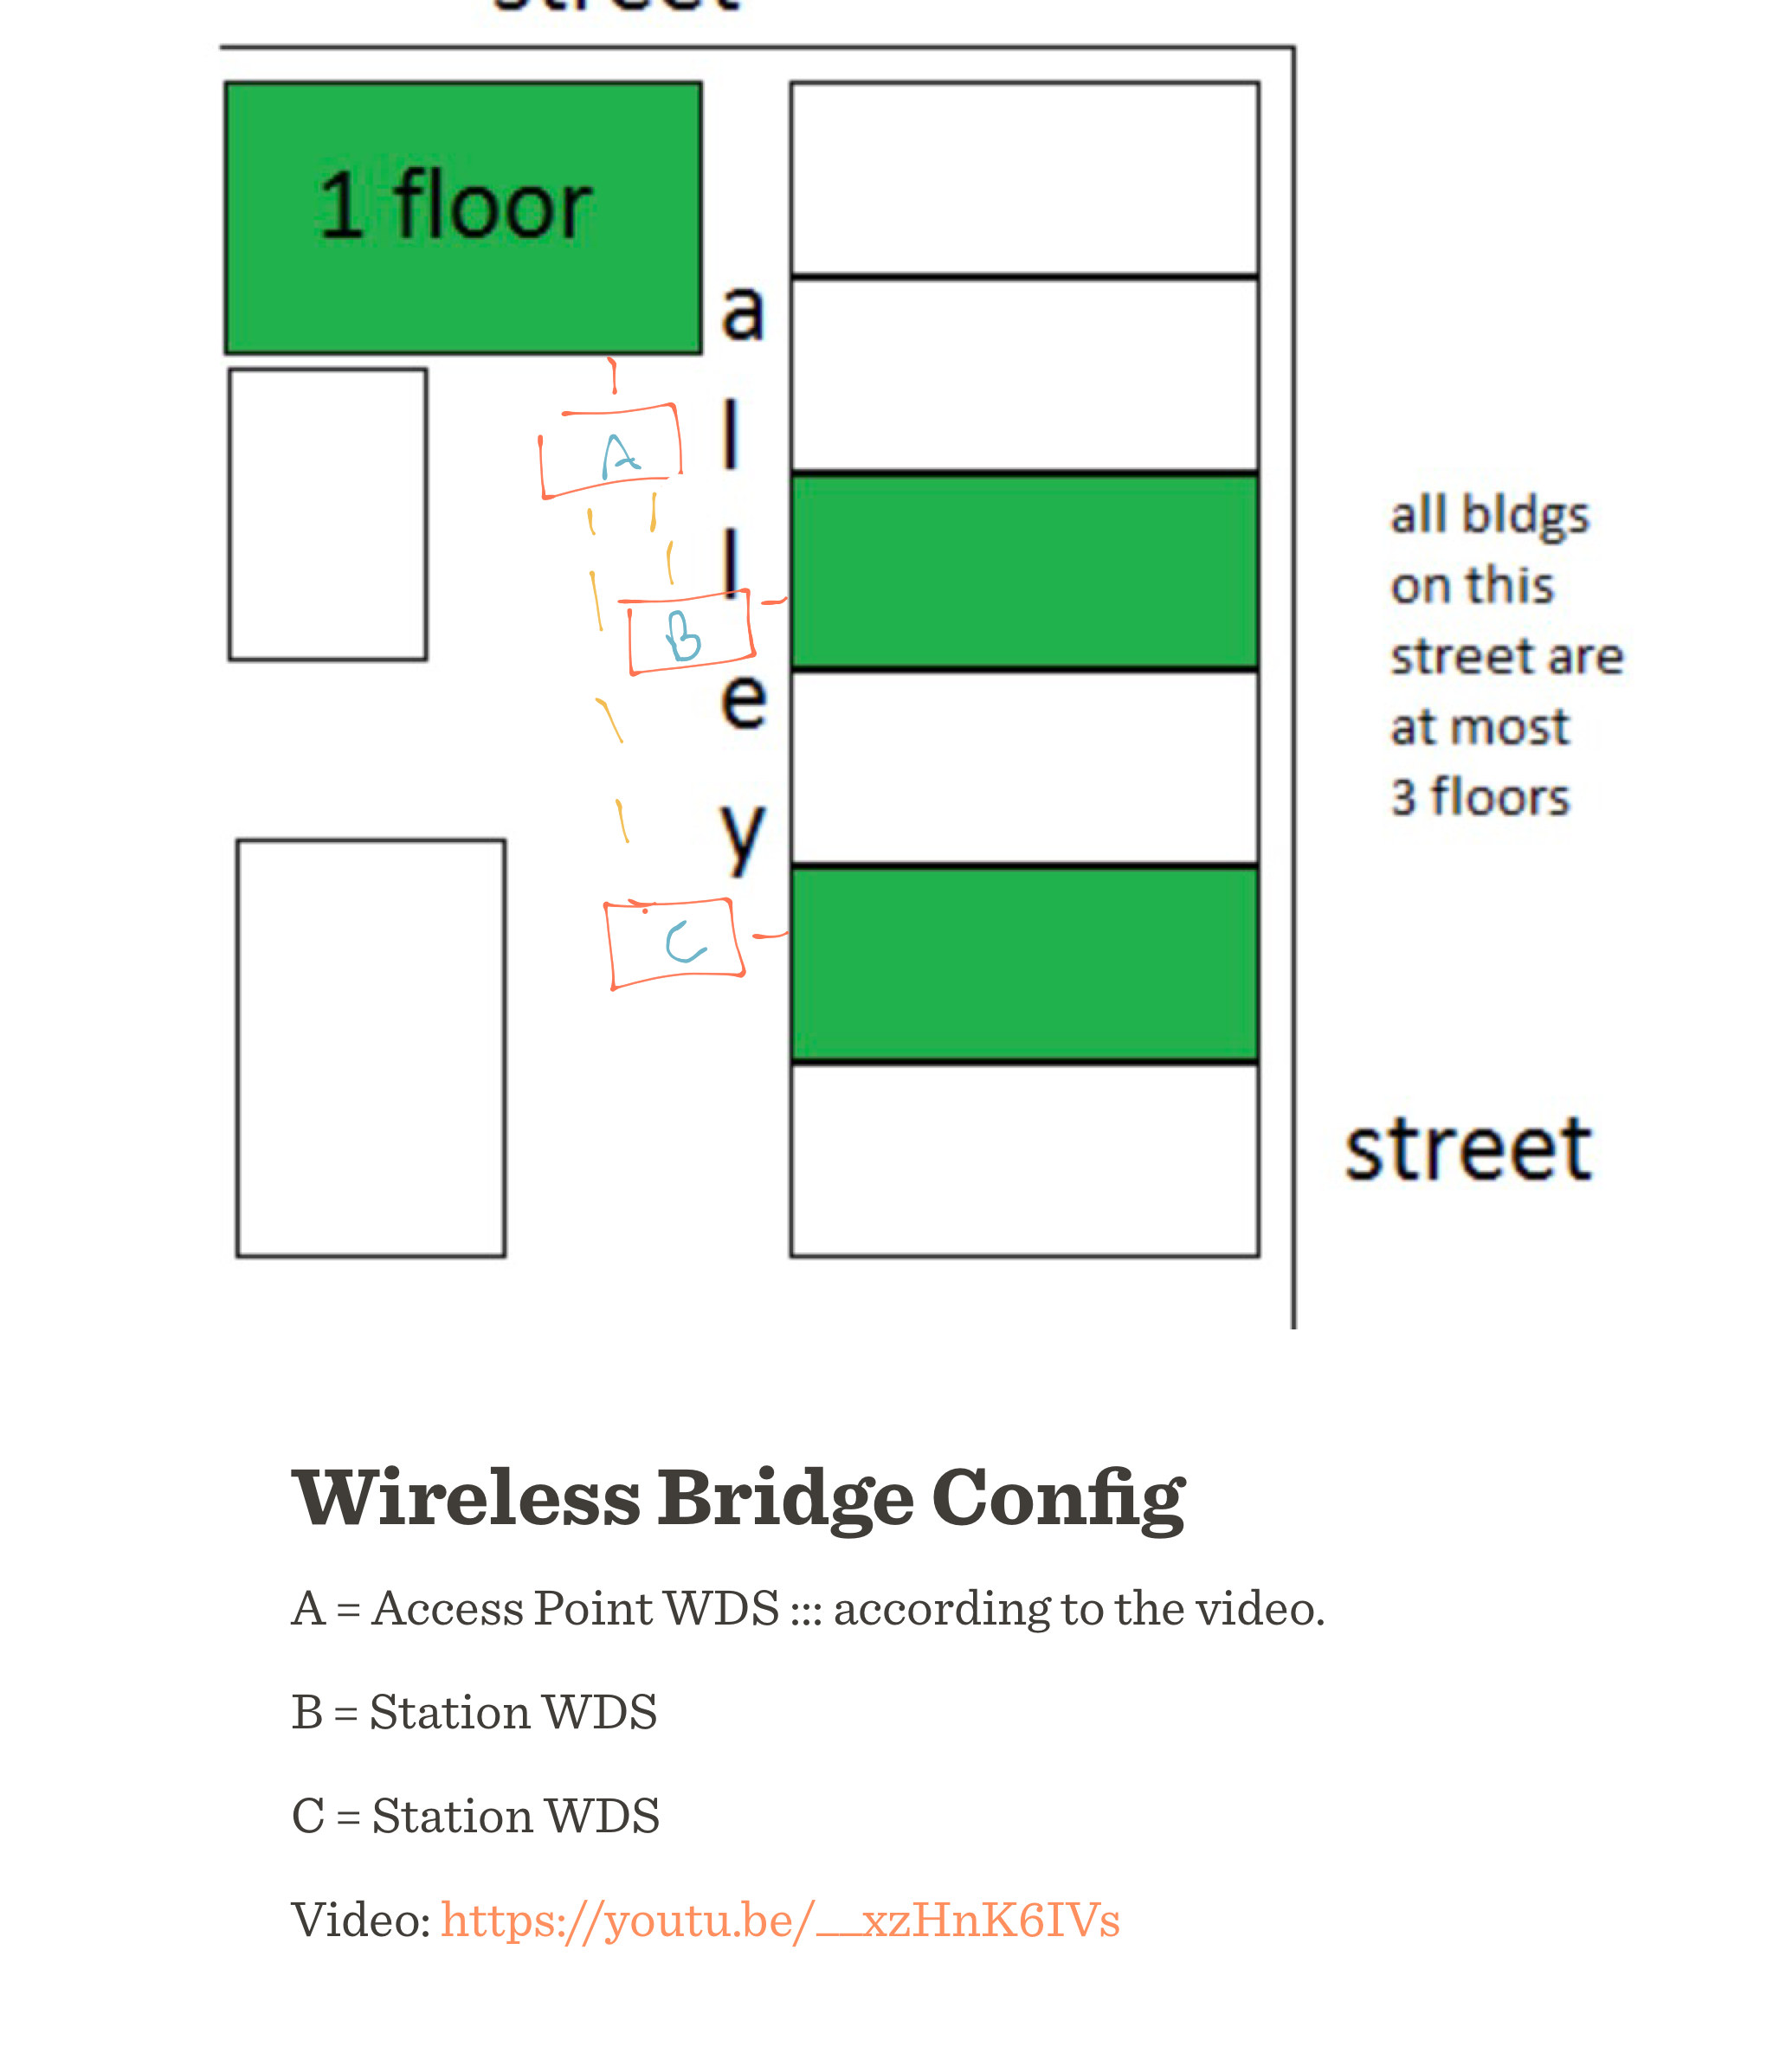 VPN ideas for multiple buildings - Networking and Wifi